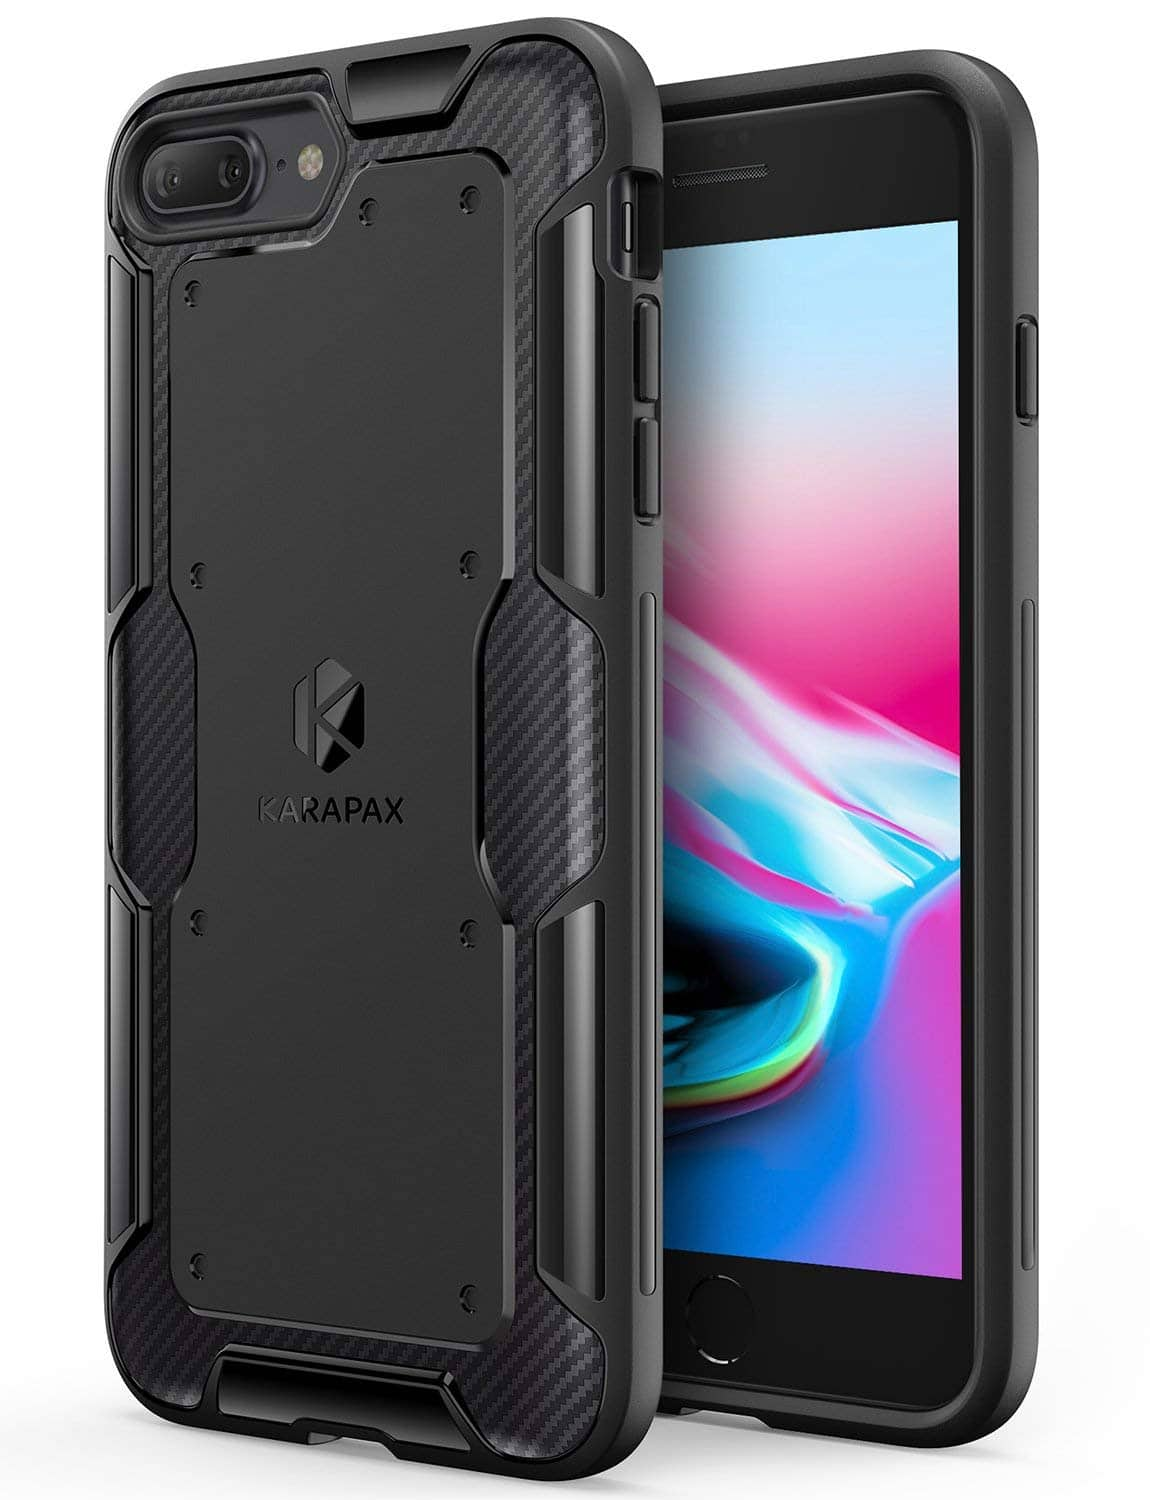 Anker KARAPAX Shield Case - iPhone 8 Plus Case, iPhone 7 Plus Case $3.99